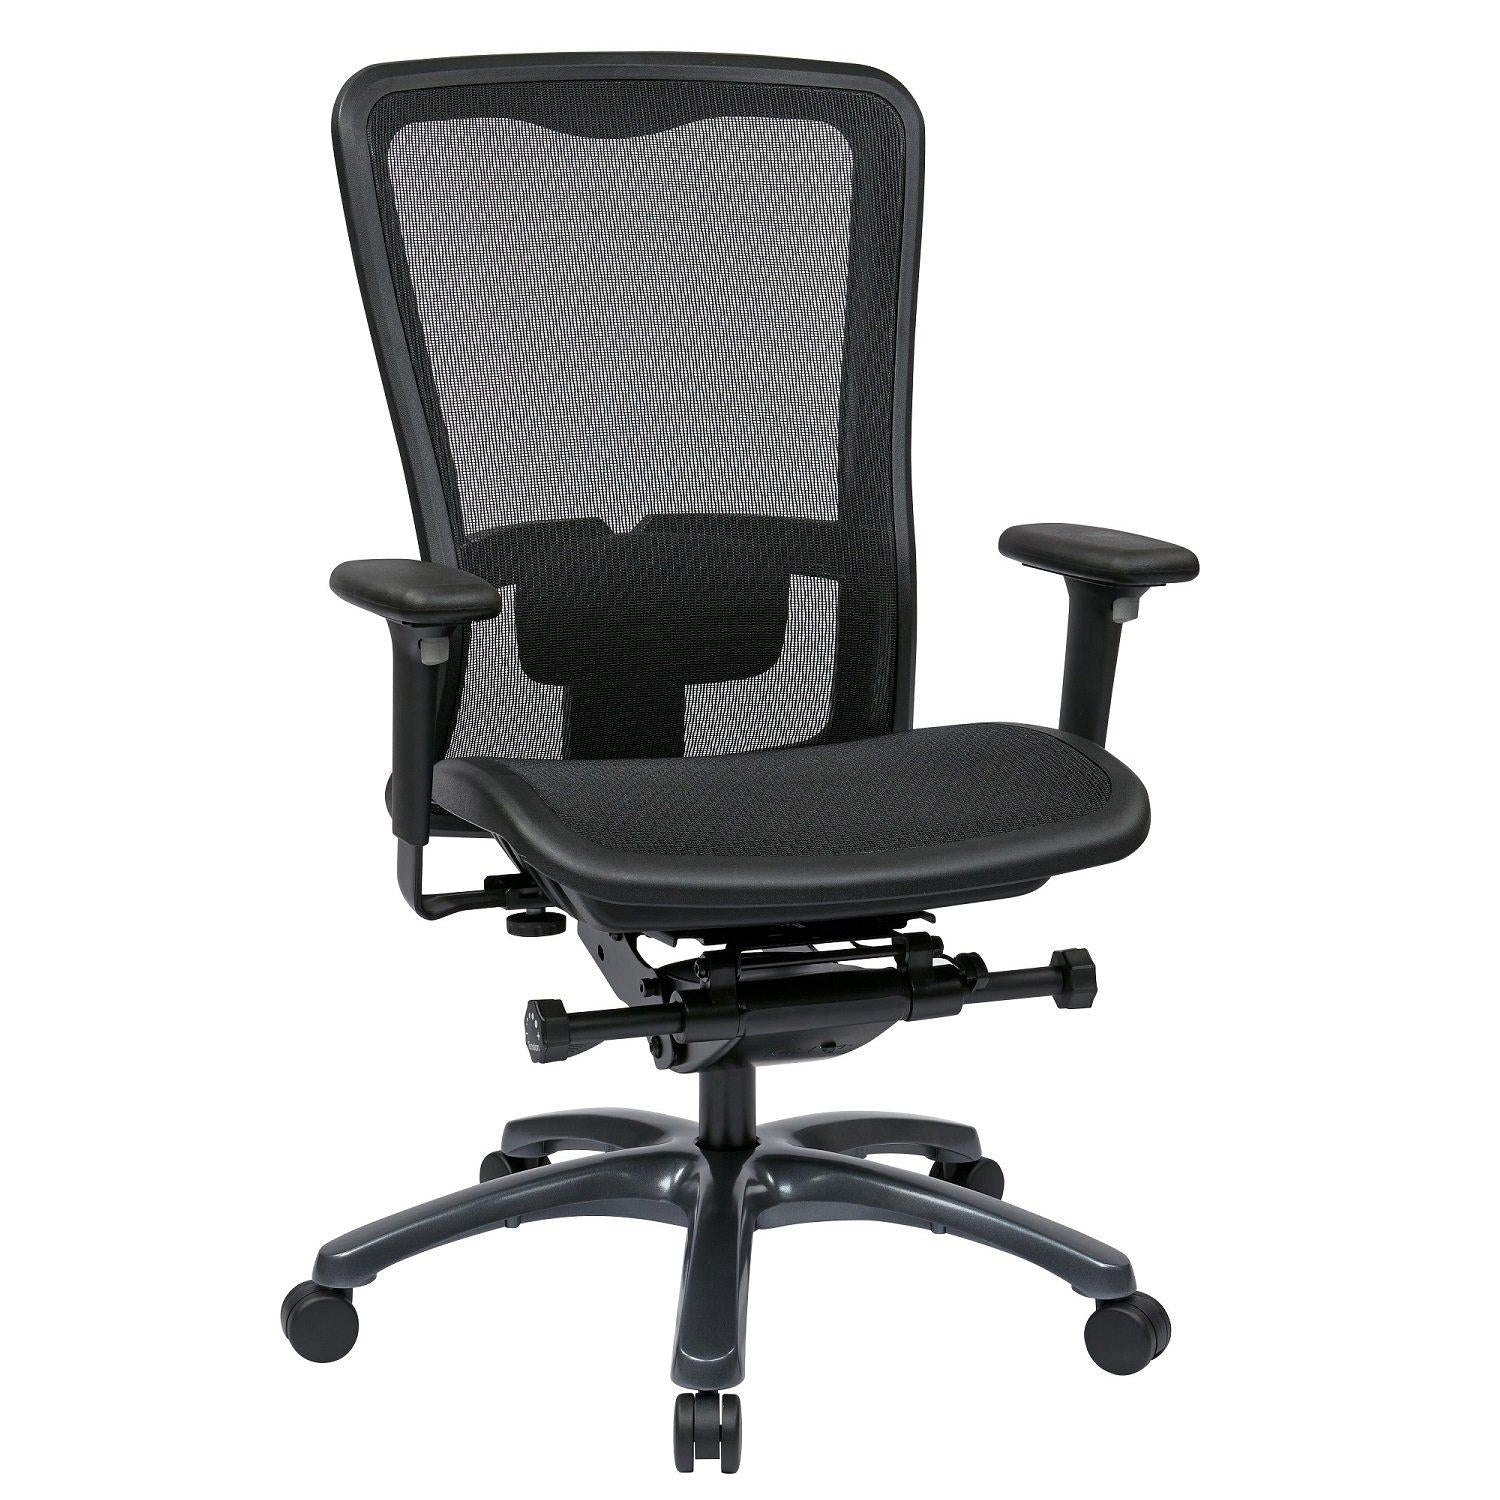 ProGrid Mesh High Back Chair with 3-Way Adjustable Arms